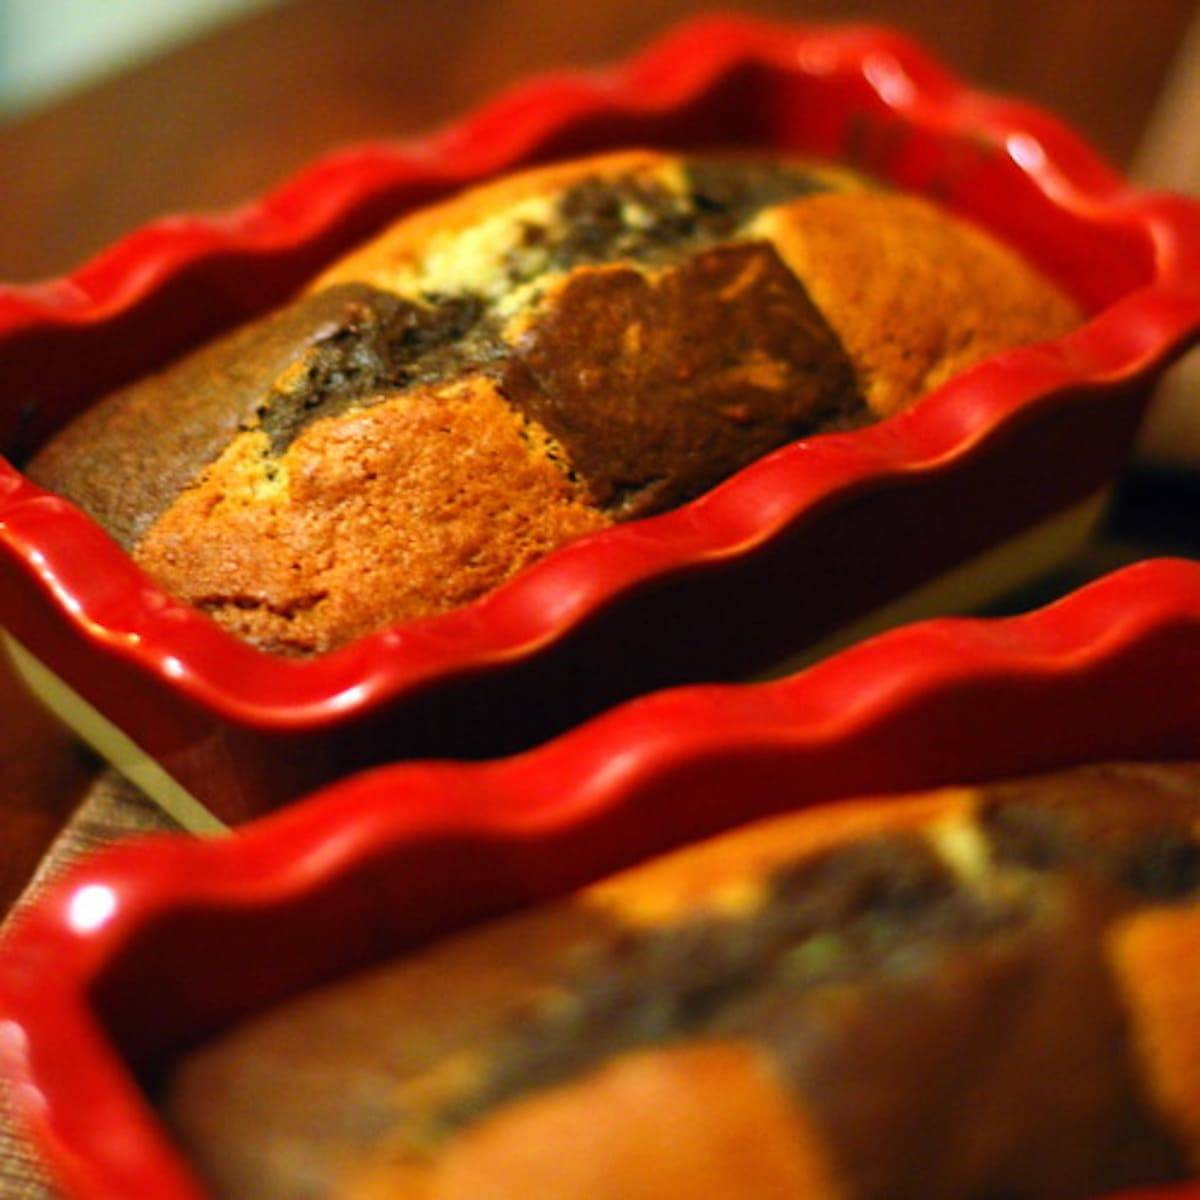 Two loaves of chocolate checkered banana bread in red baking dishes.